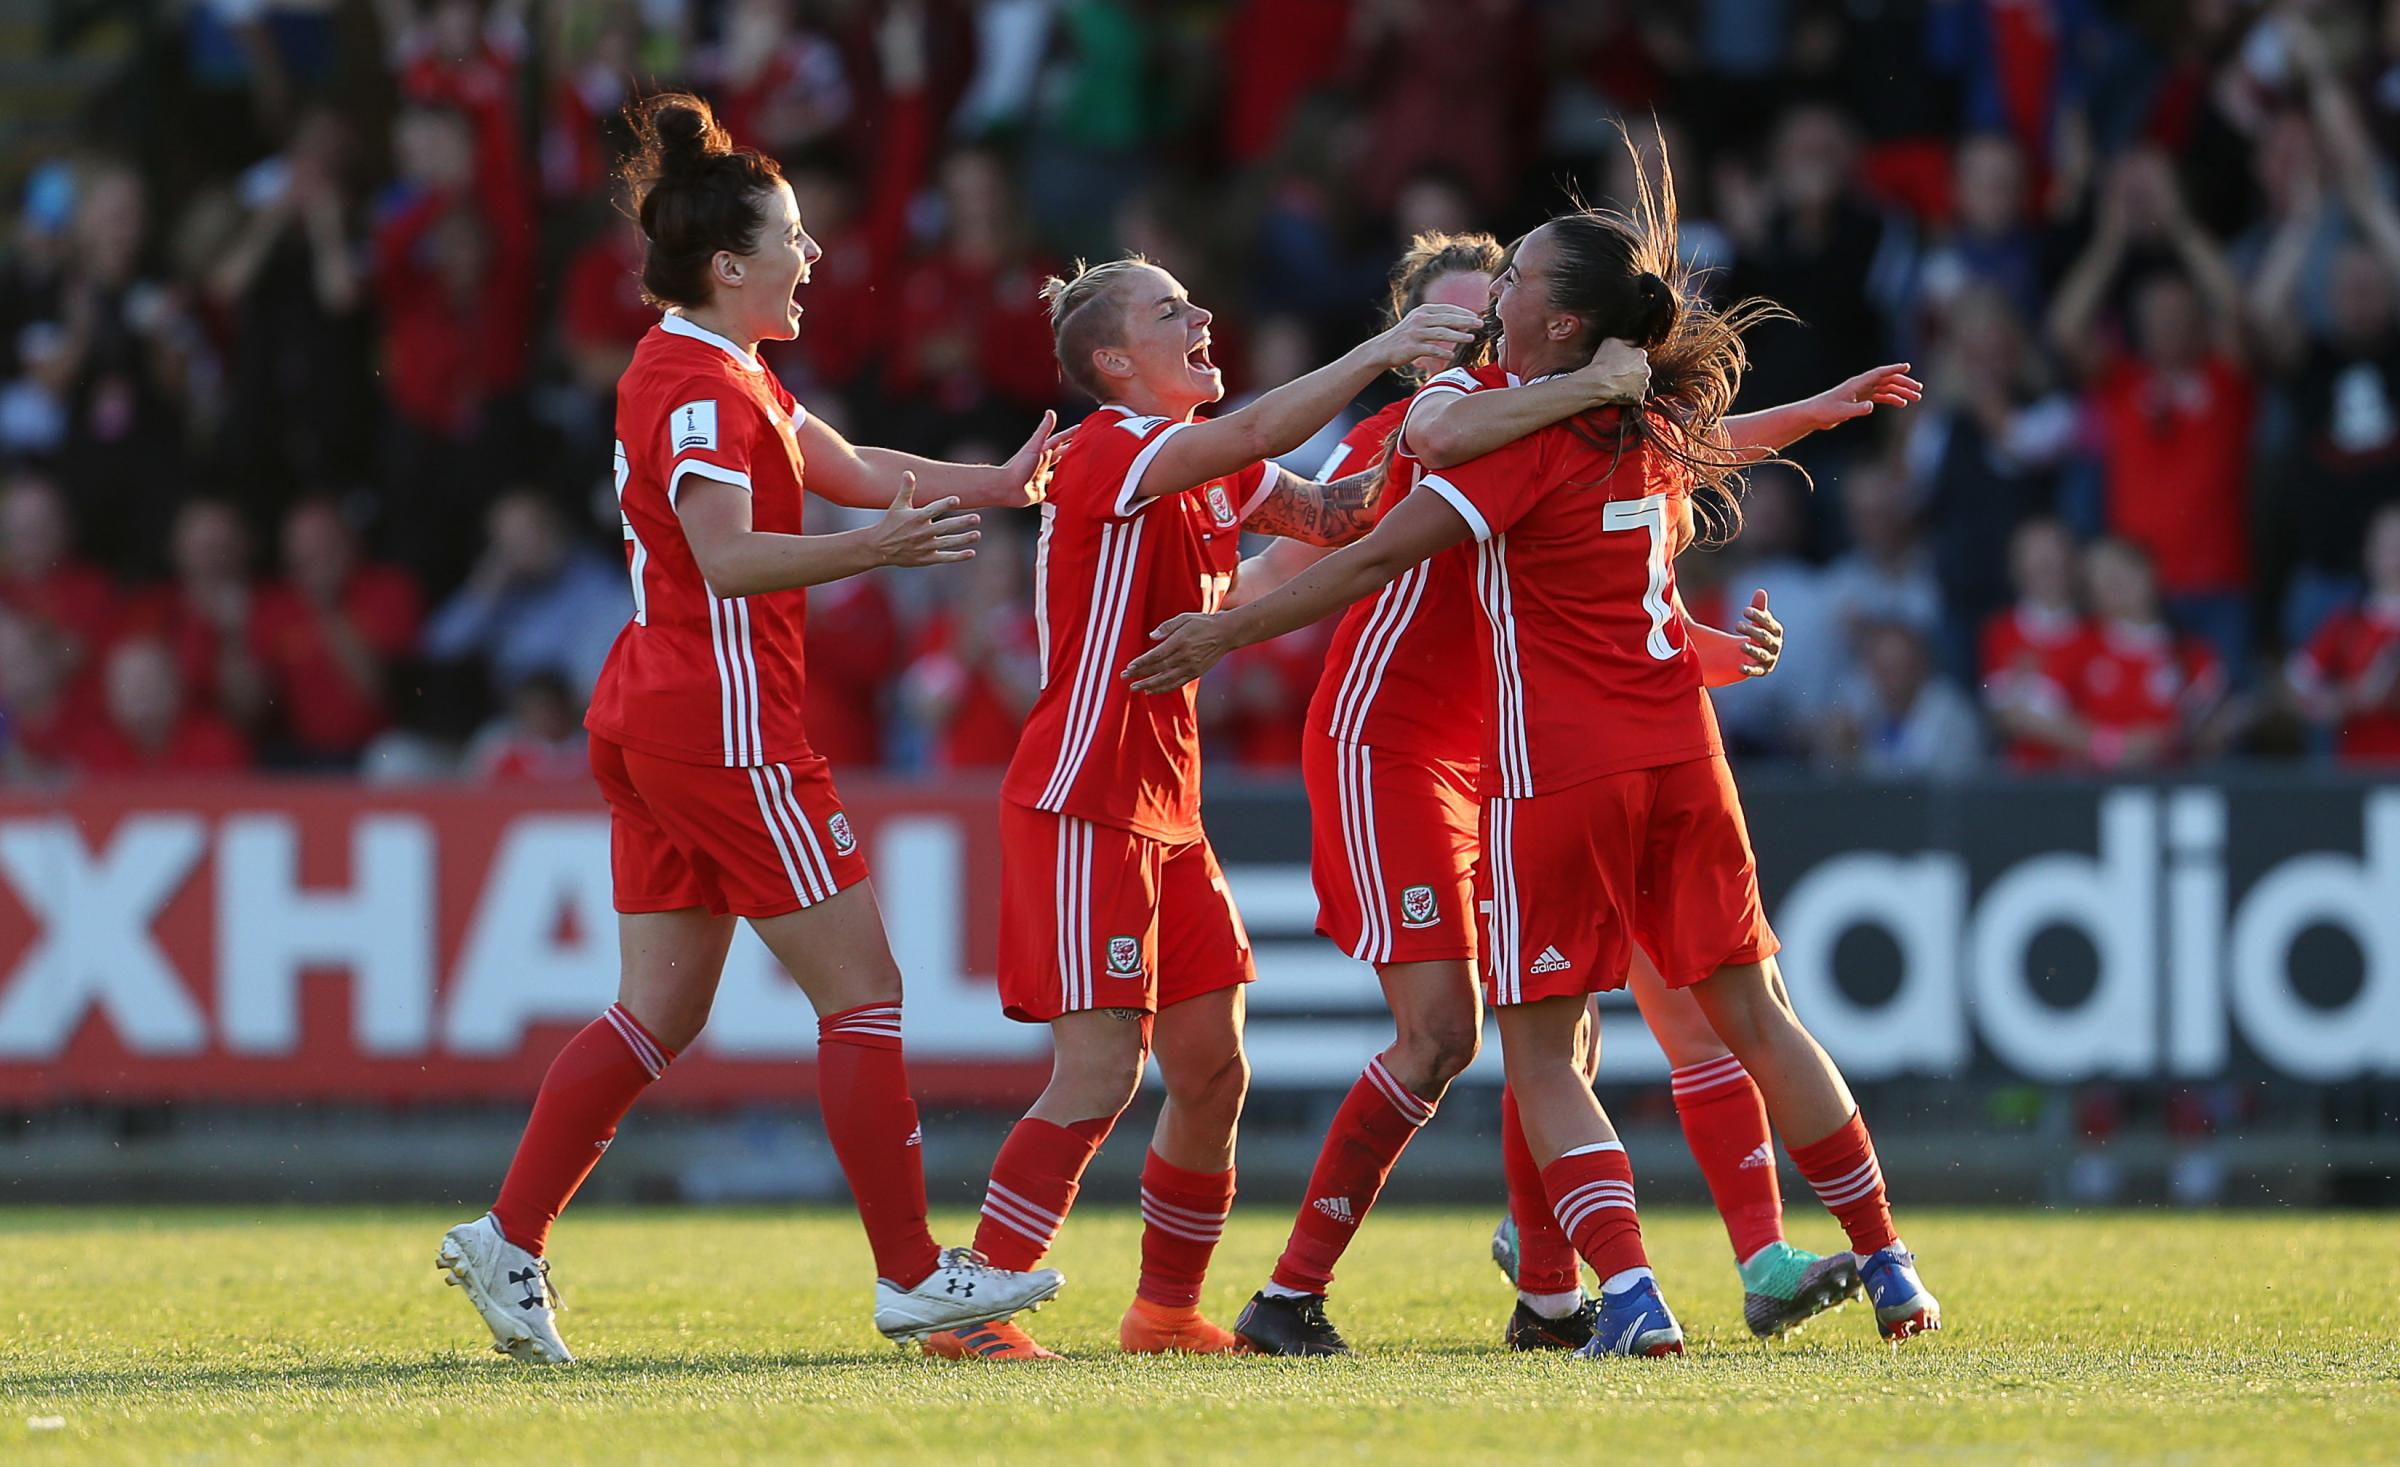 GOAL DROUGHT: Wales celebrate Natasha Harding's goal against Russia in June 2018 – they haven't scored since